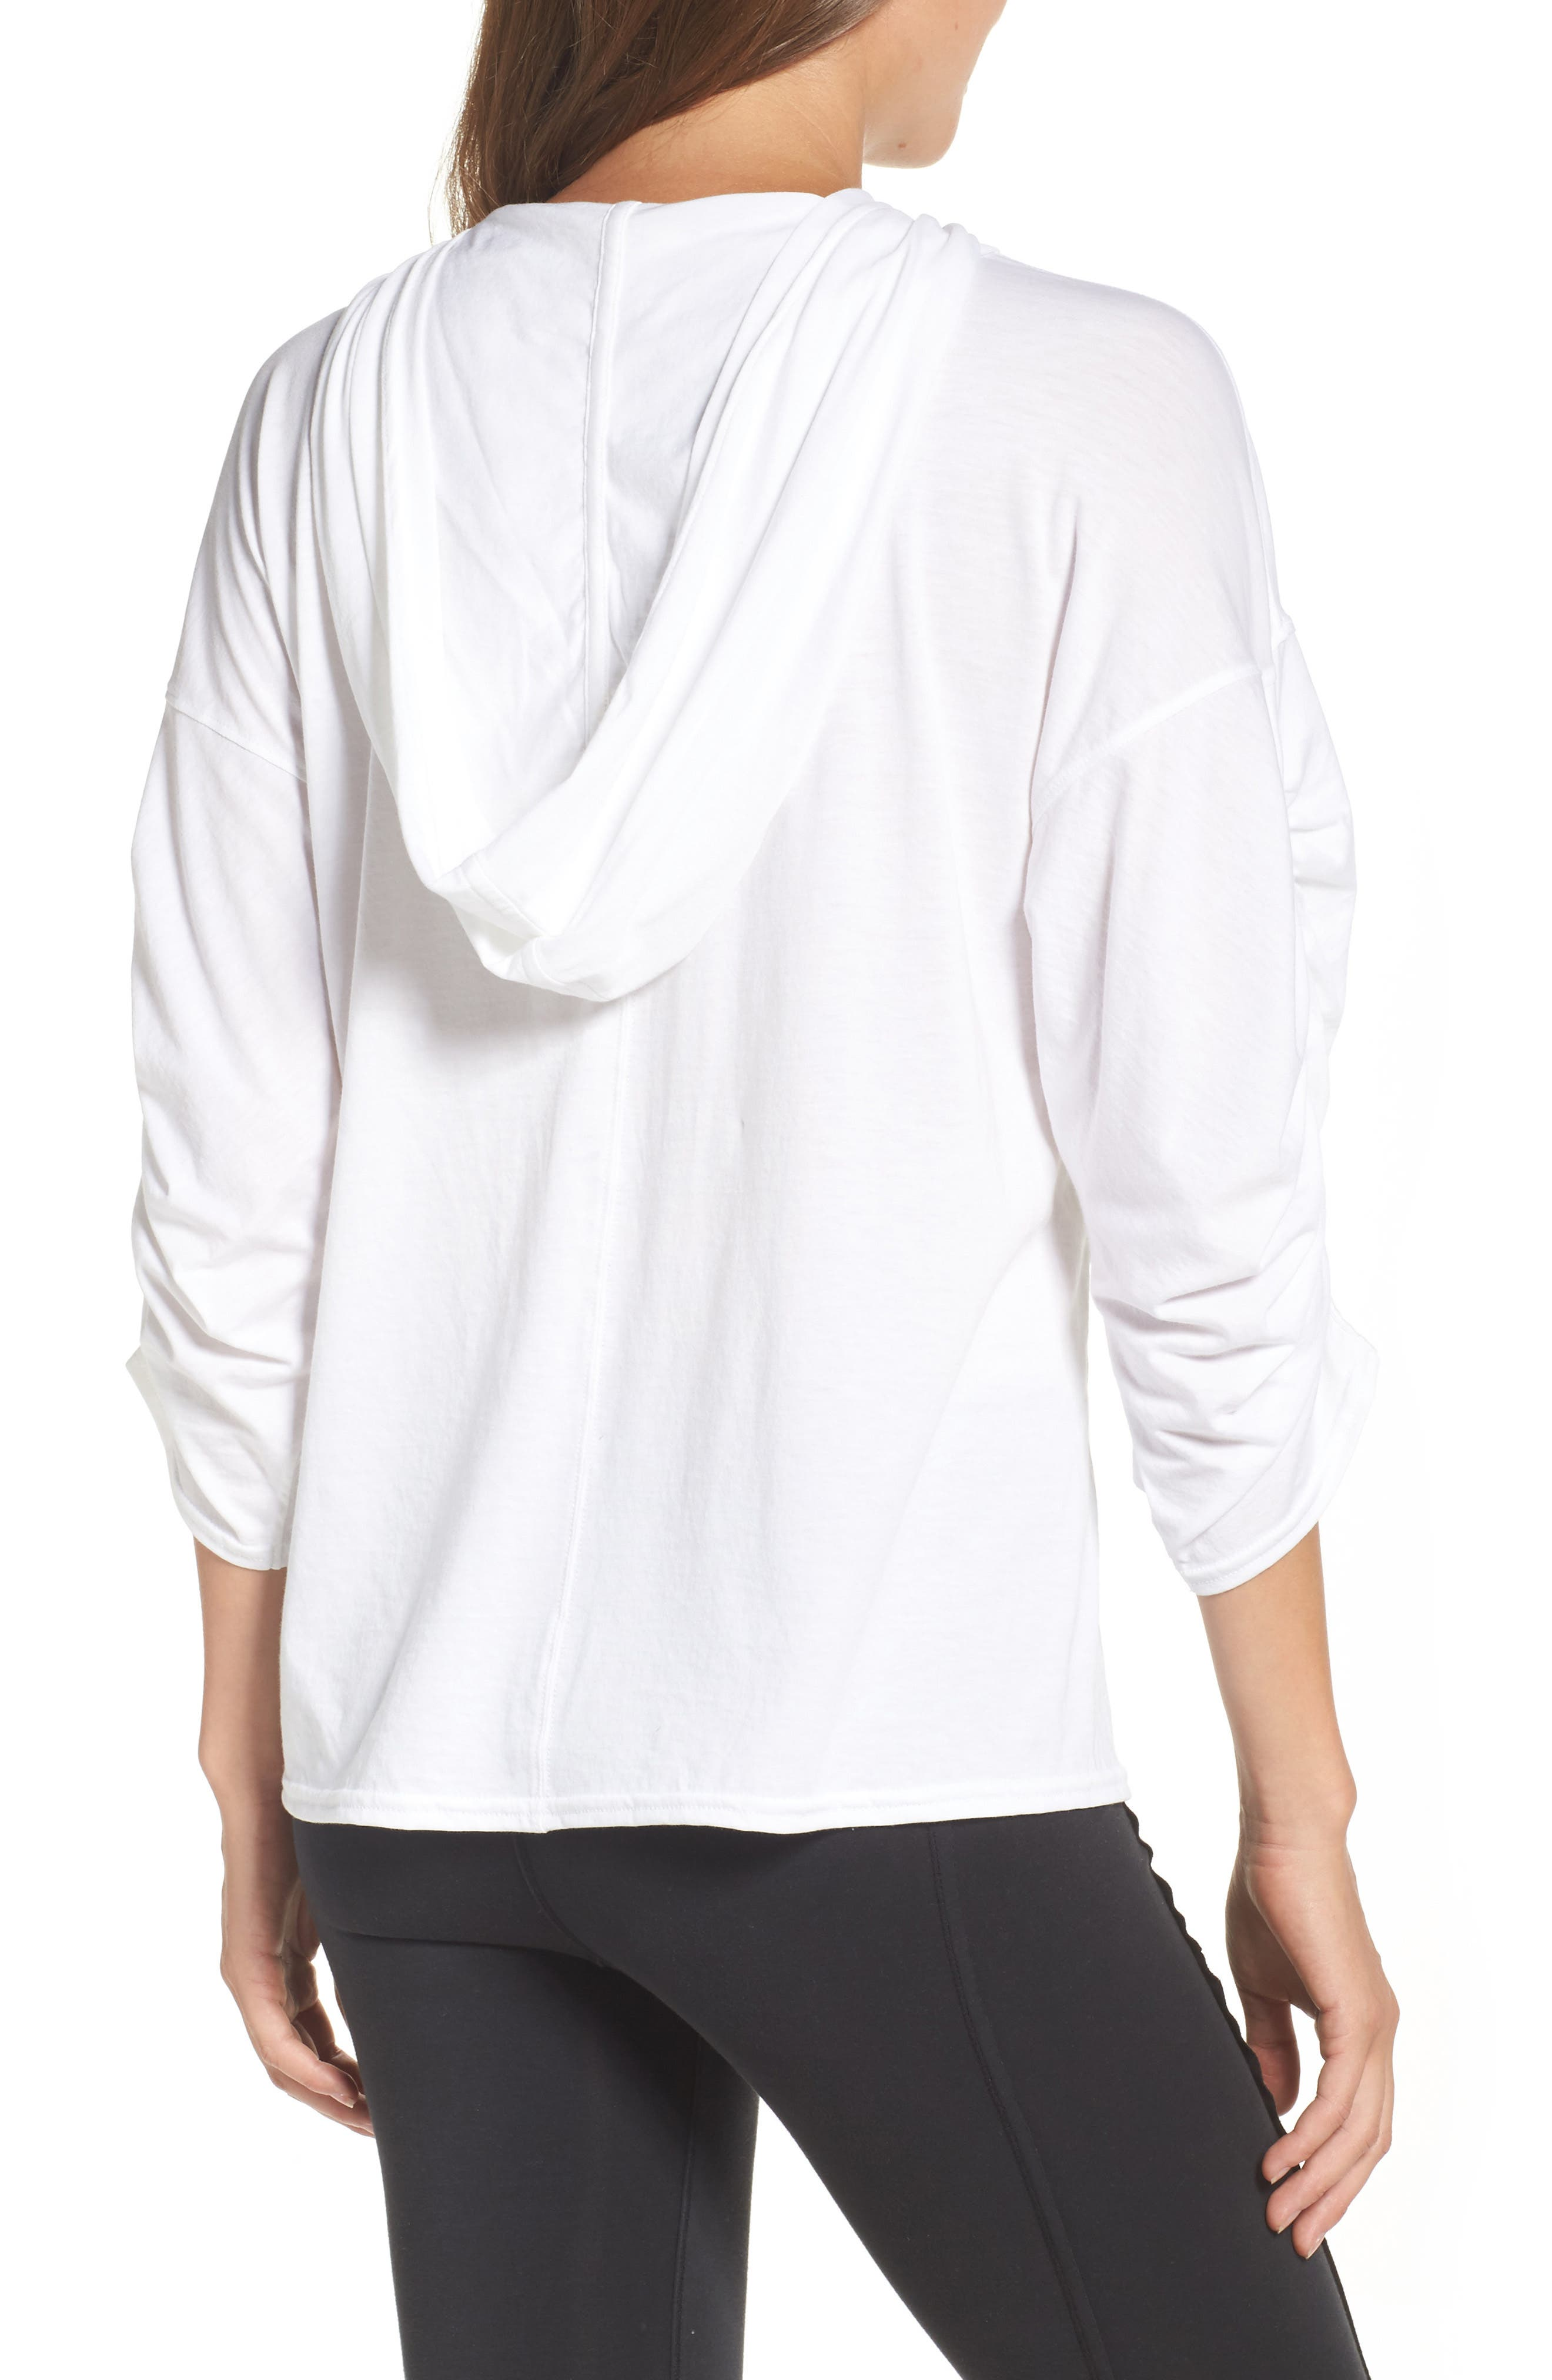 FP Movement Horizon Hooded Tee,                             Alternate thumbnail 3, color,                             White